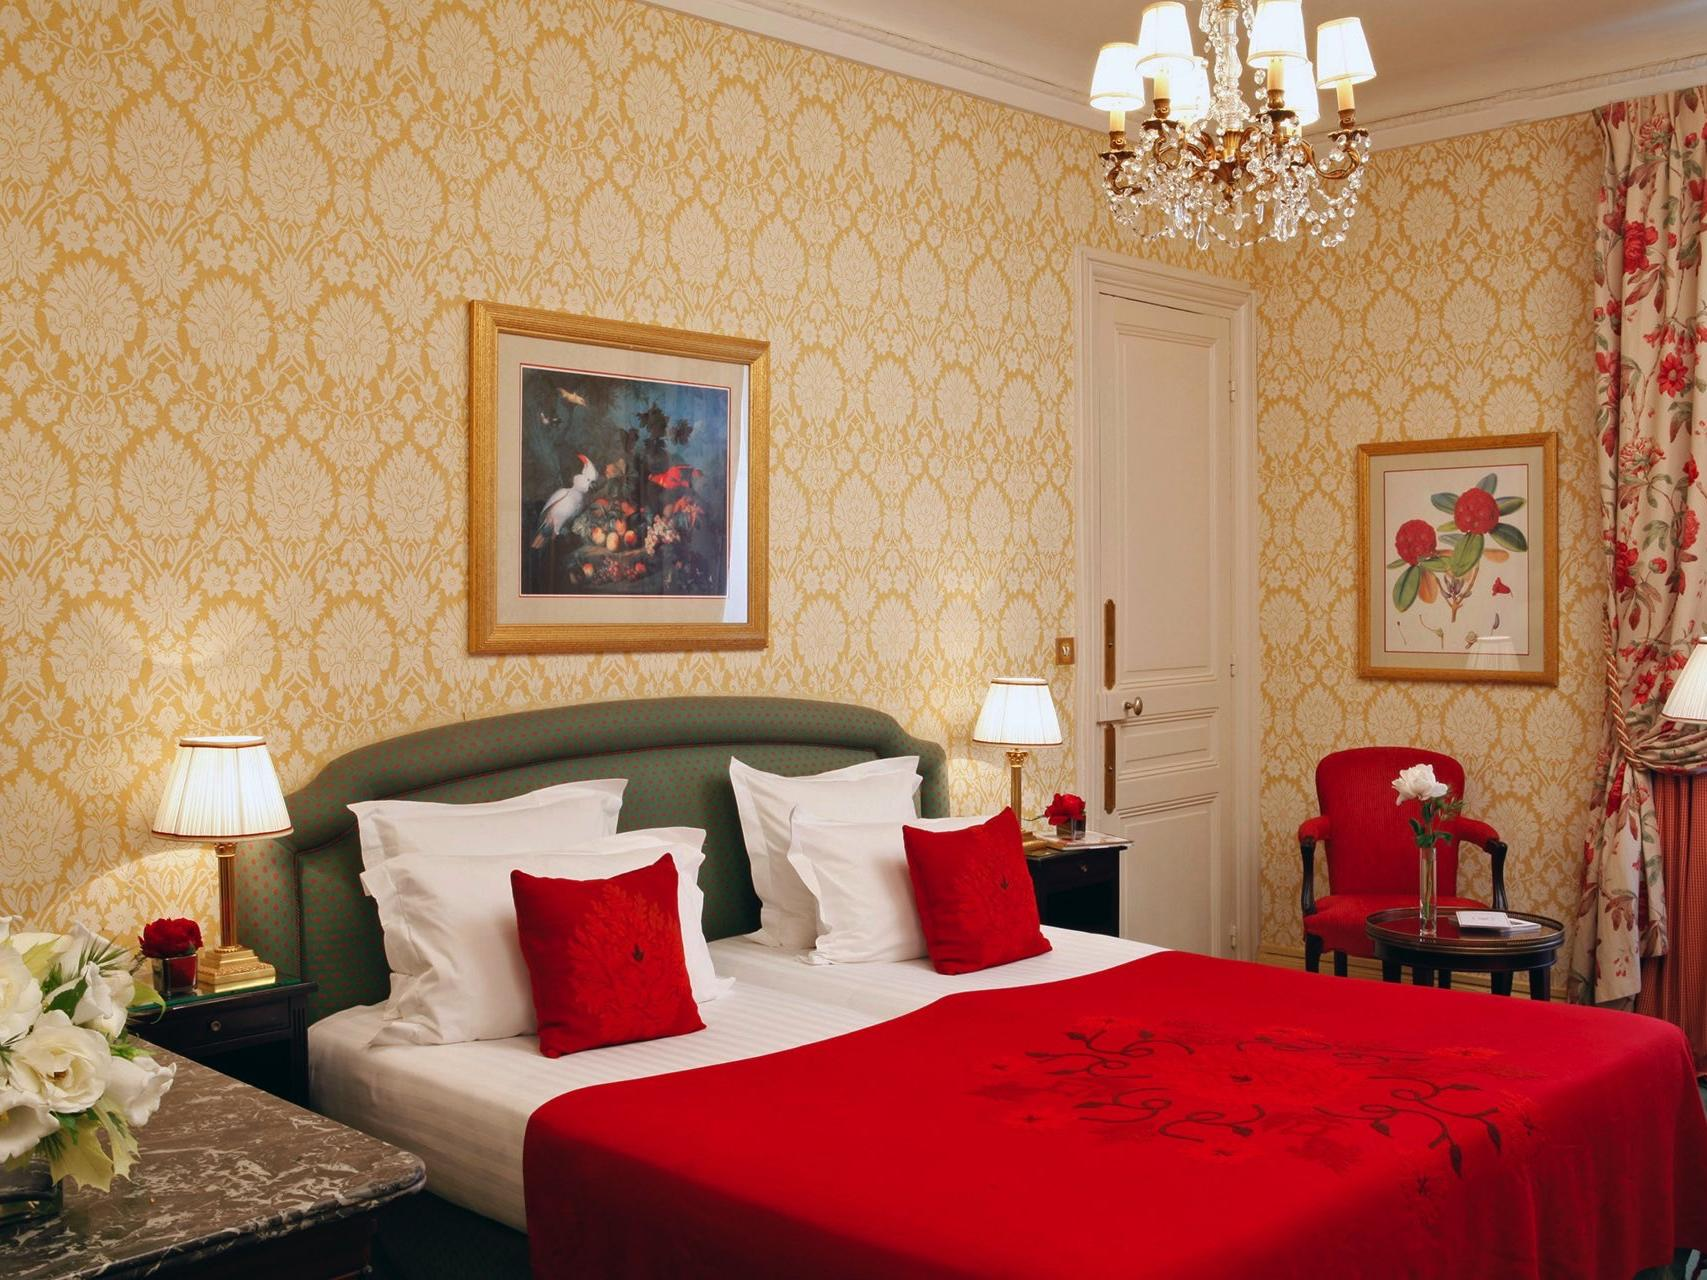 Deluxe Saint Honor Room at Hôtel Westminster